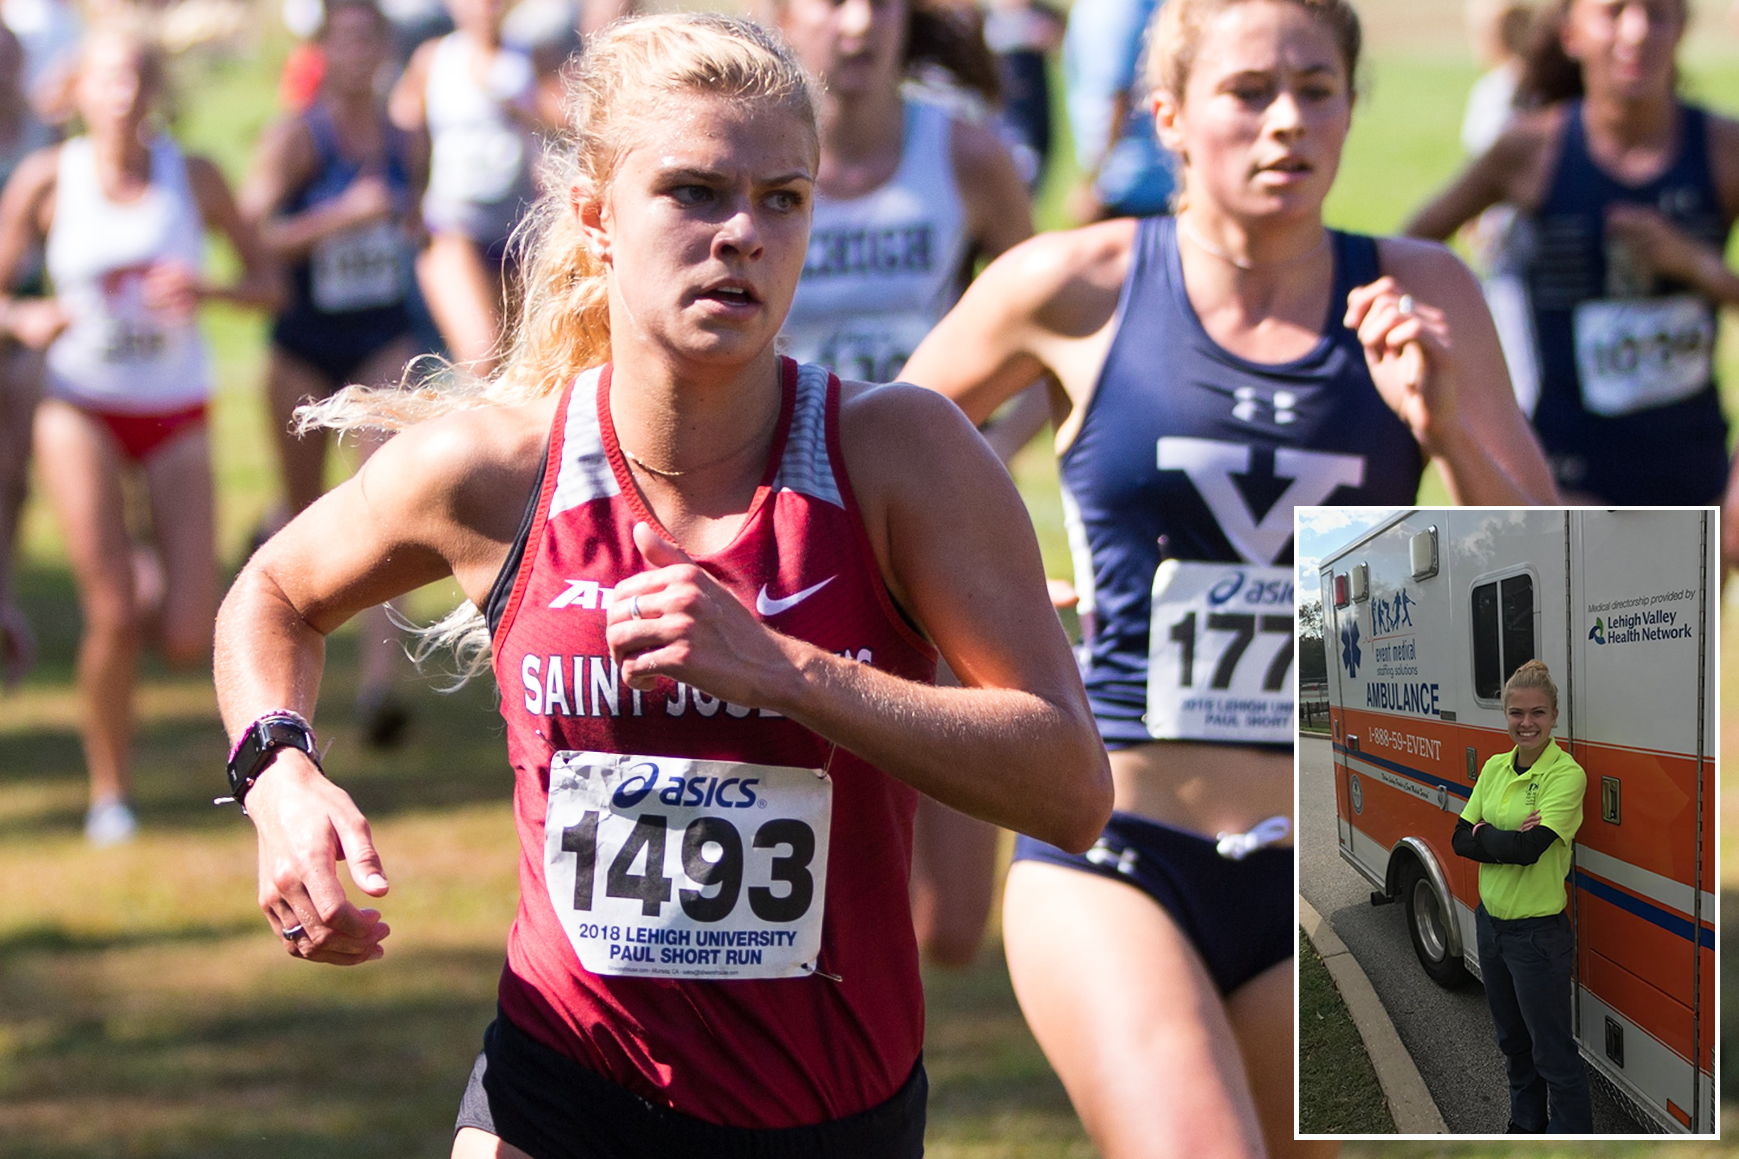 Lindsey Oremus runs cross country. In an inset photo, she is dressed in an EMT uniform, leaning against an ambulance.